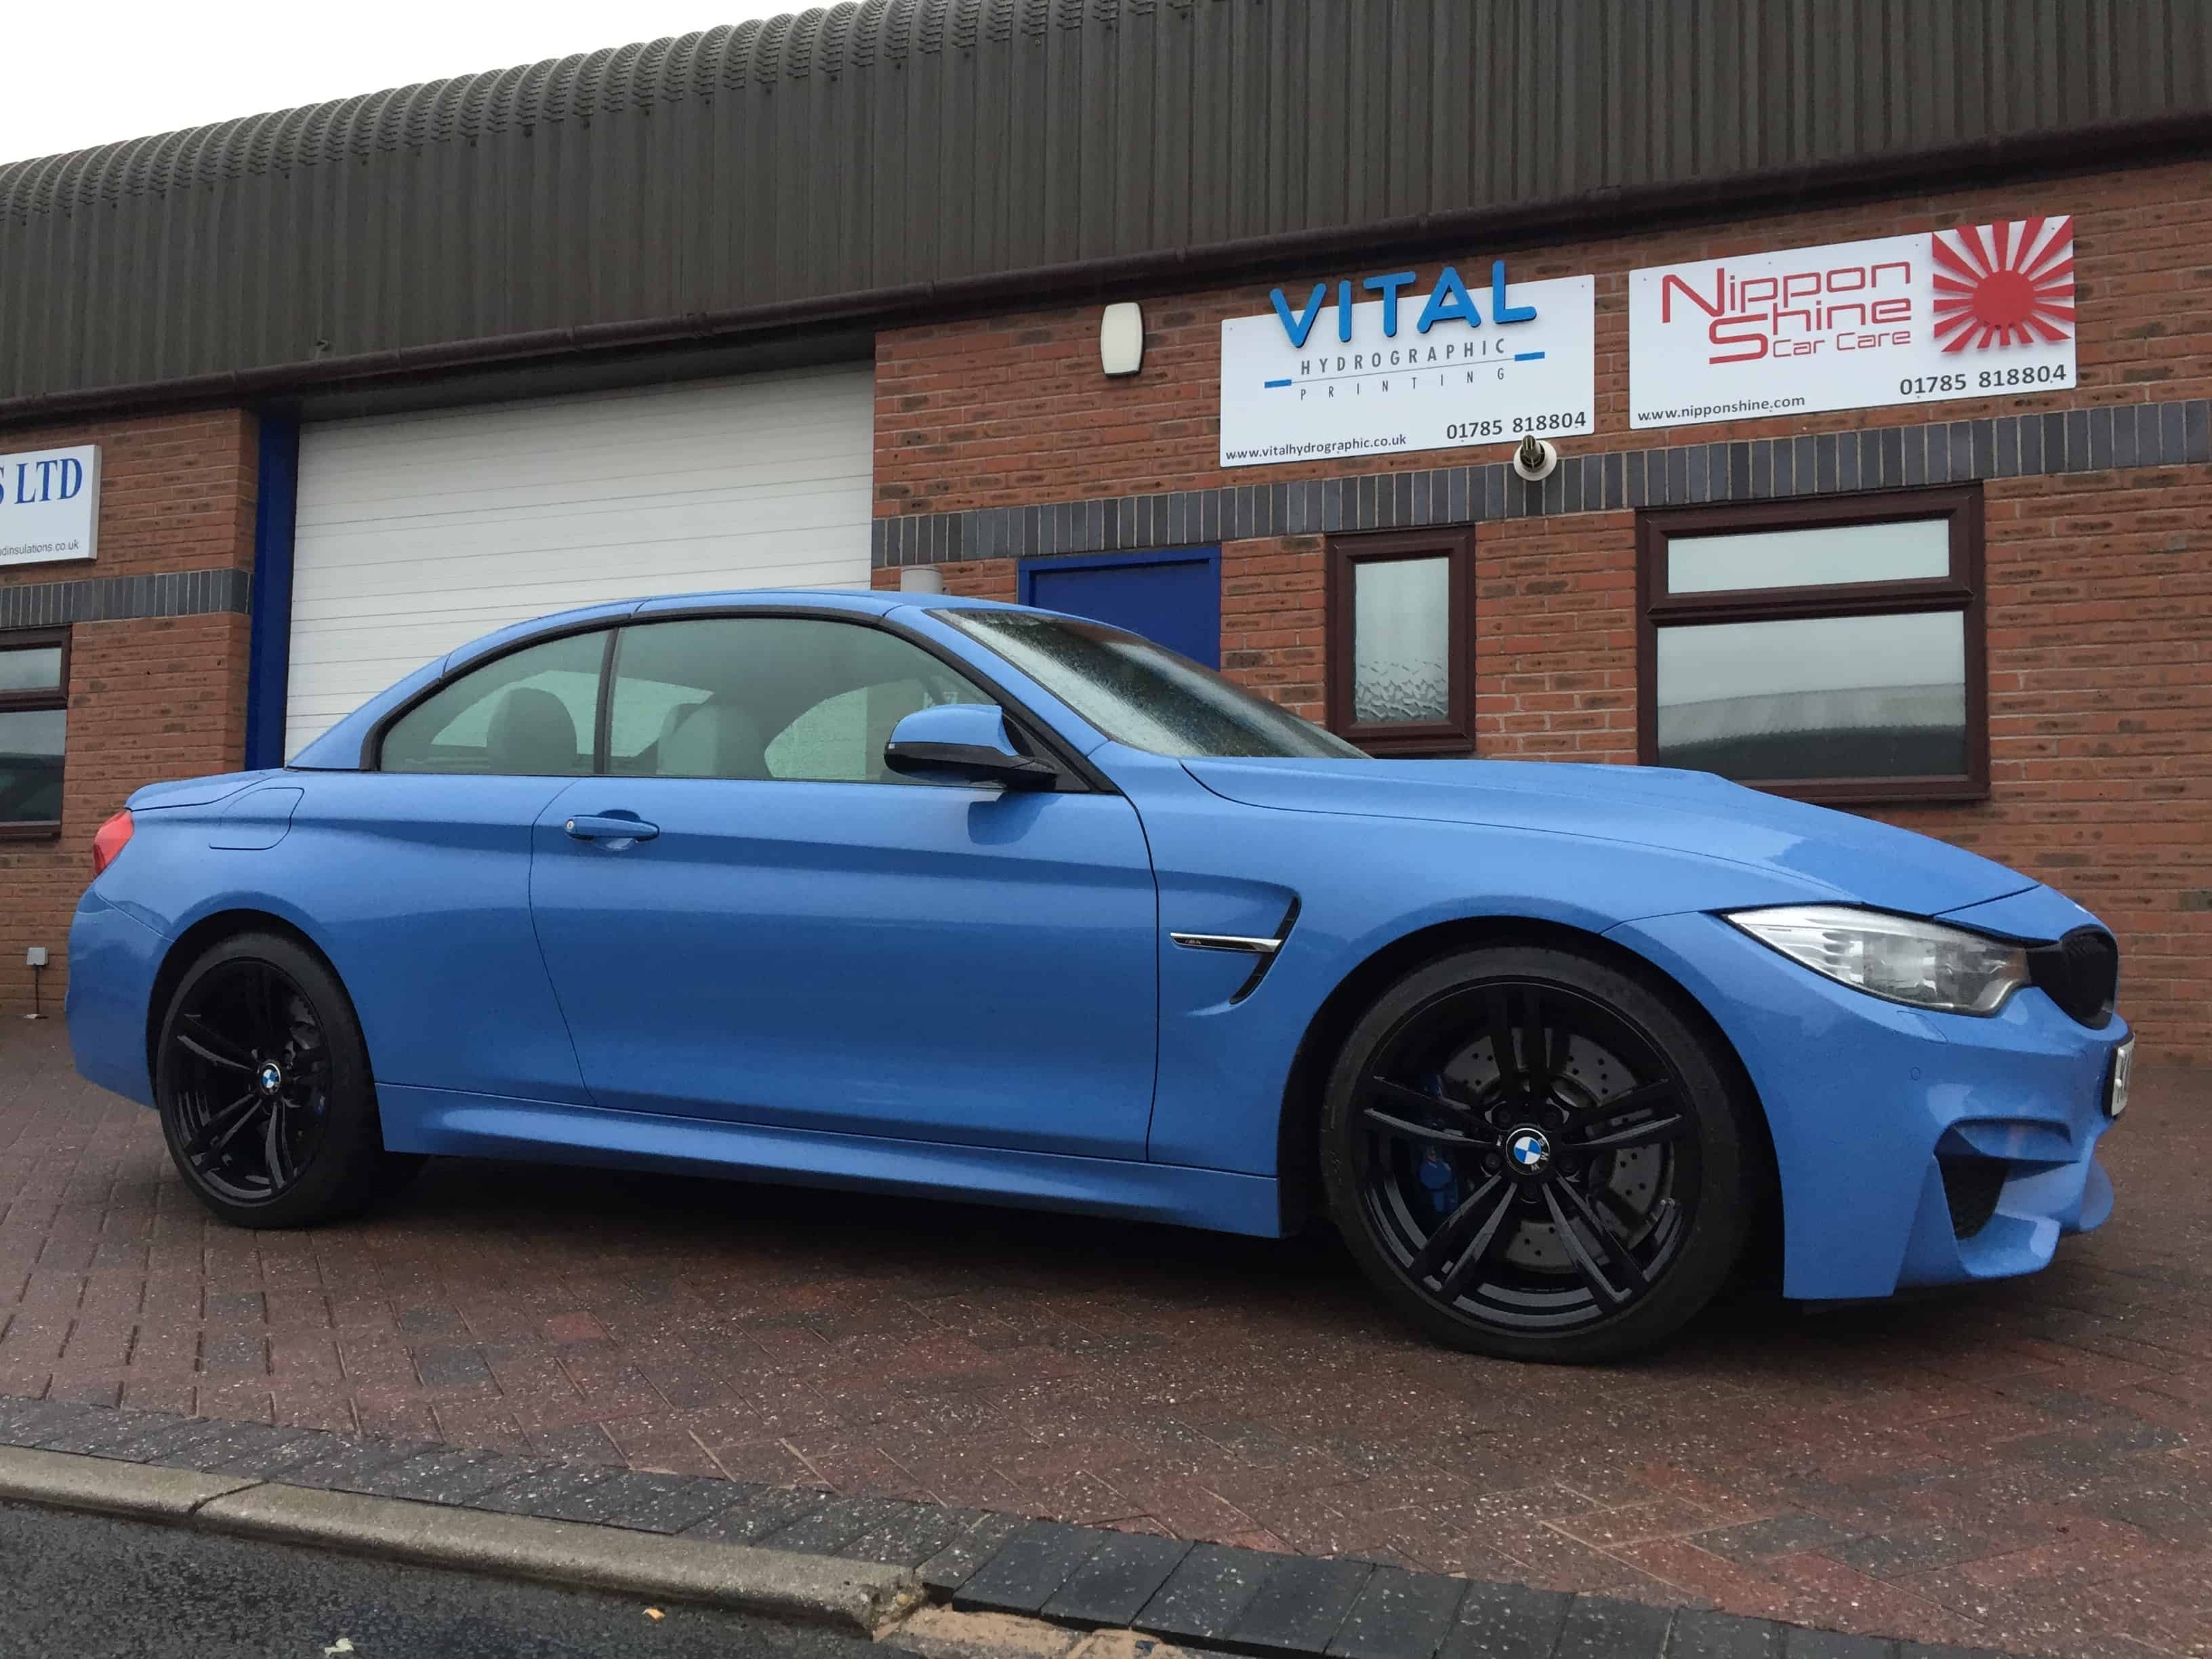 Bmw M4 Alloys Finished In Gloss Black Vital Hydrographic